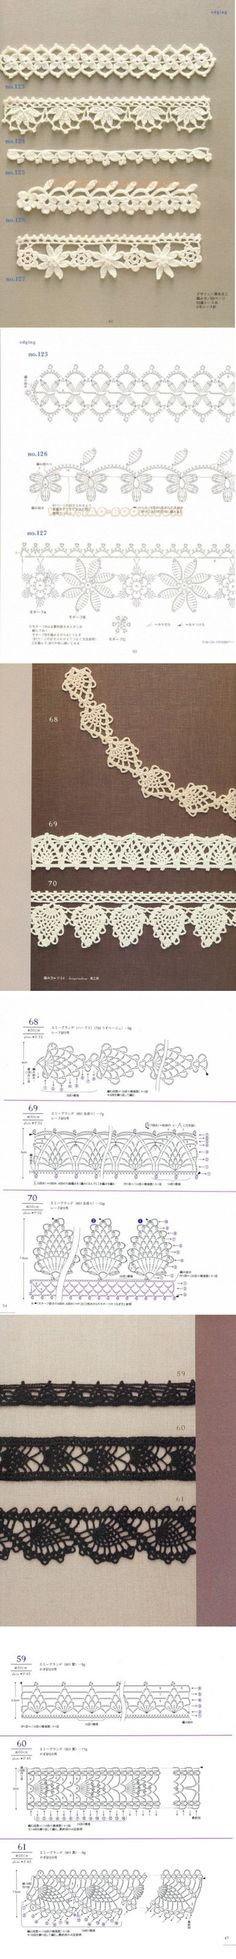 such delicate crochet edgings!                                                                                                                                                     Mais